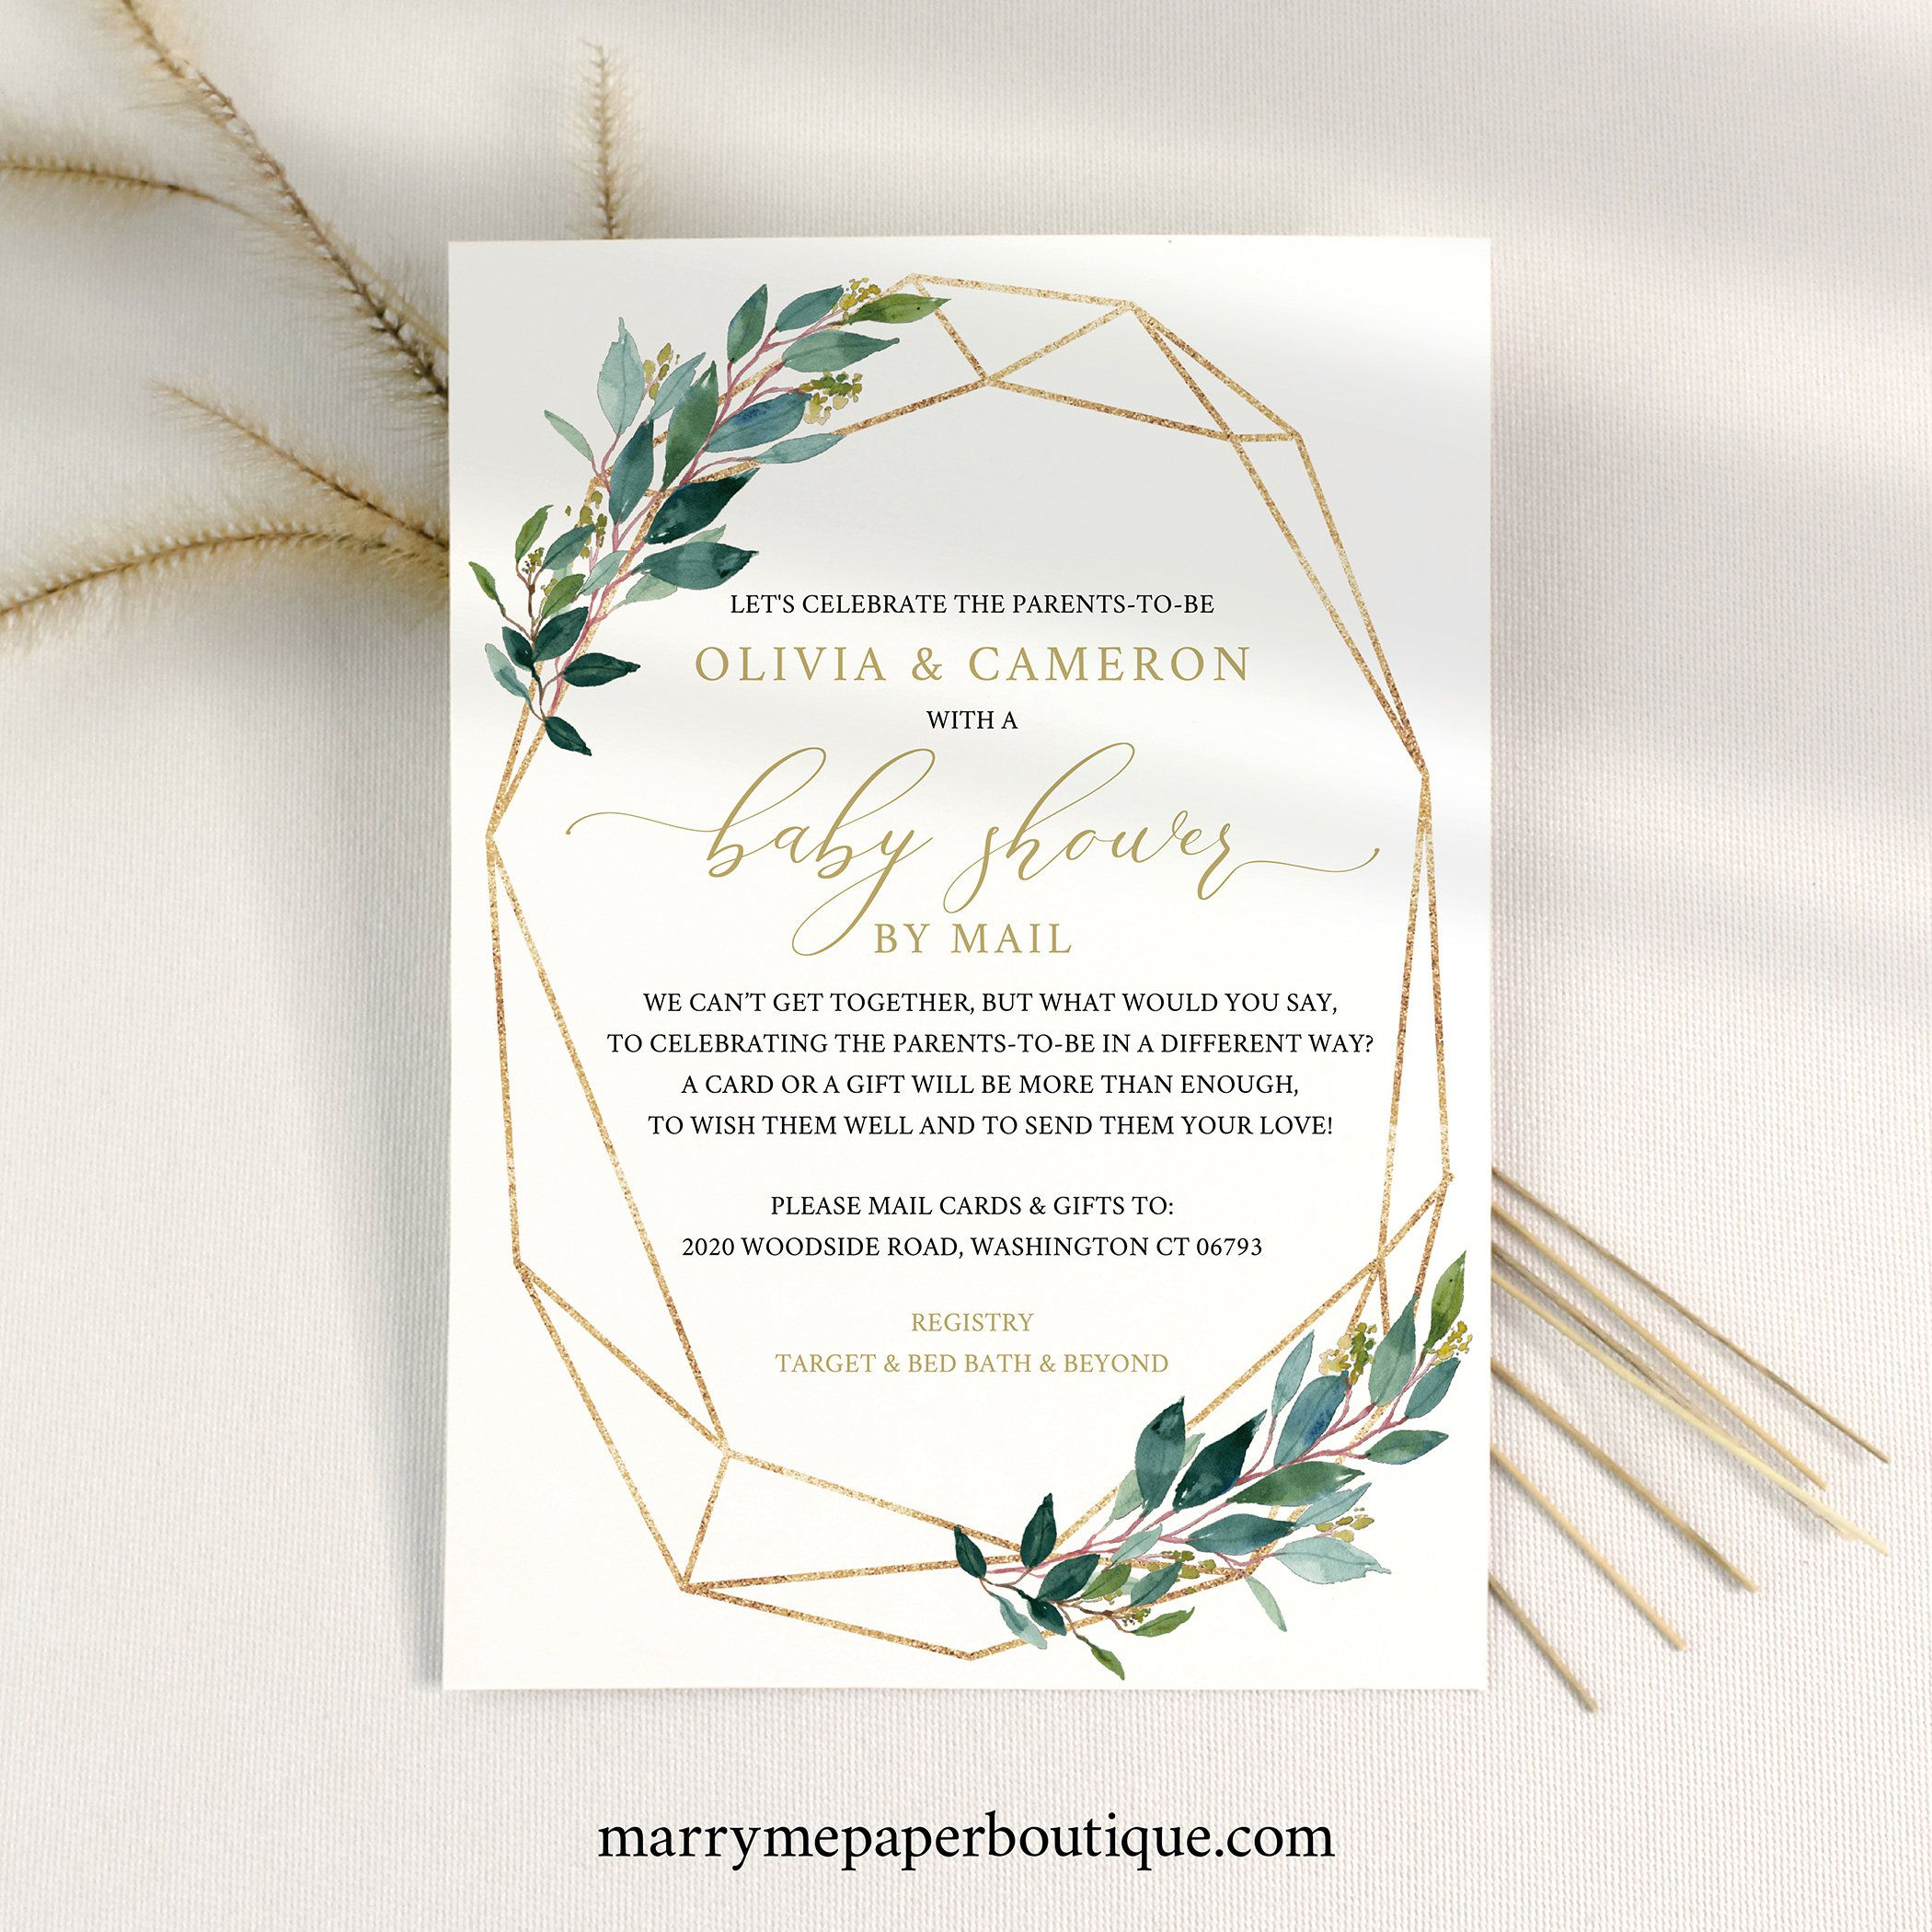 Pin on Latest at Marry Me Paper Boutique!